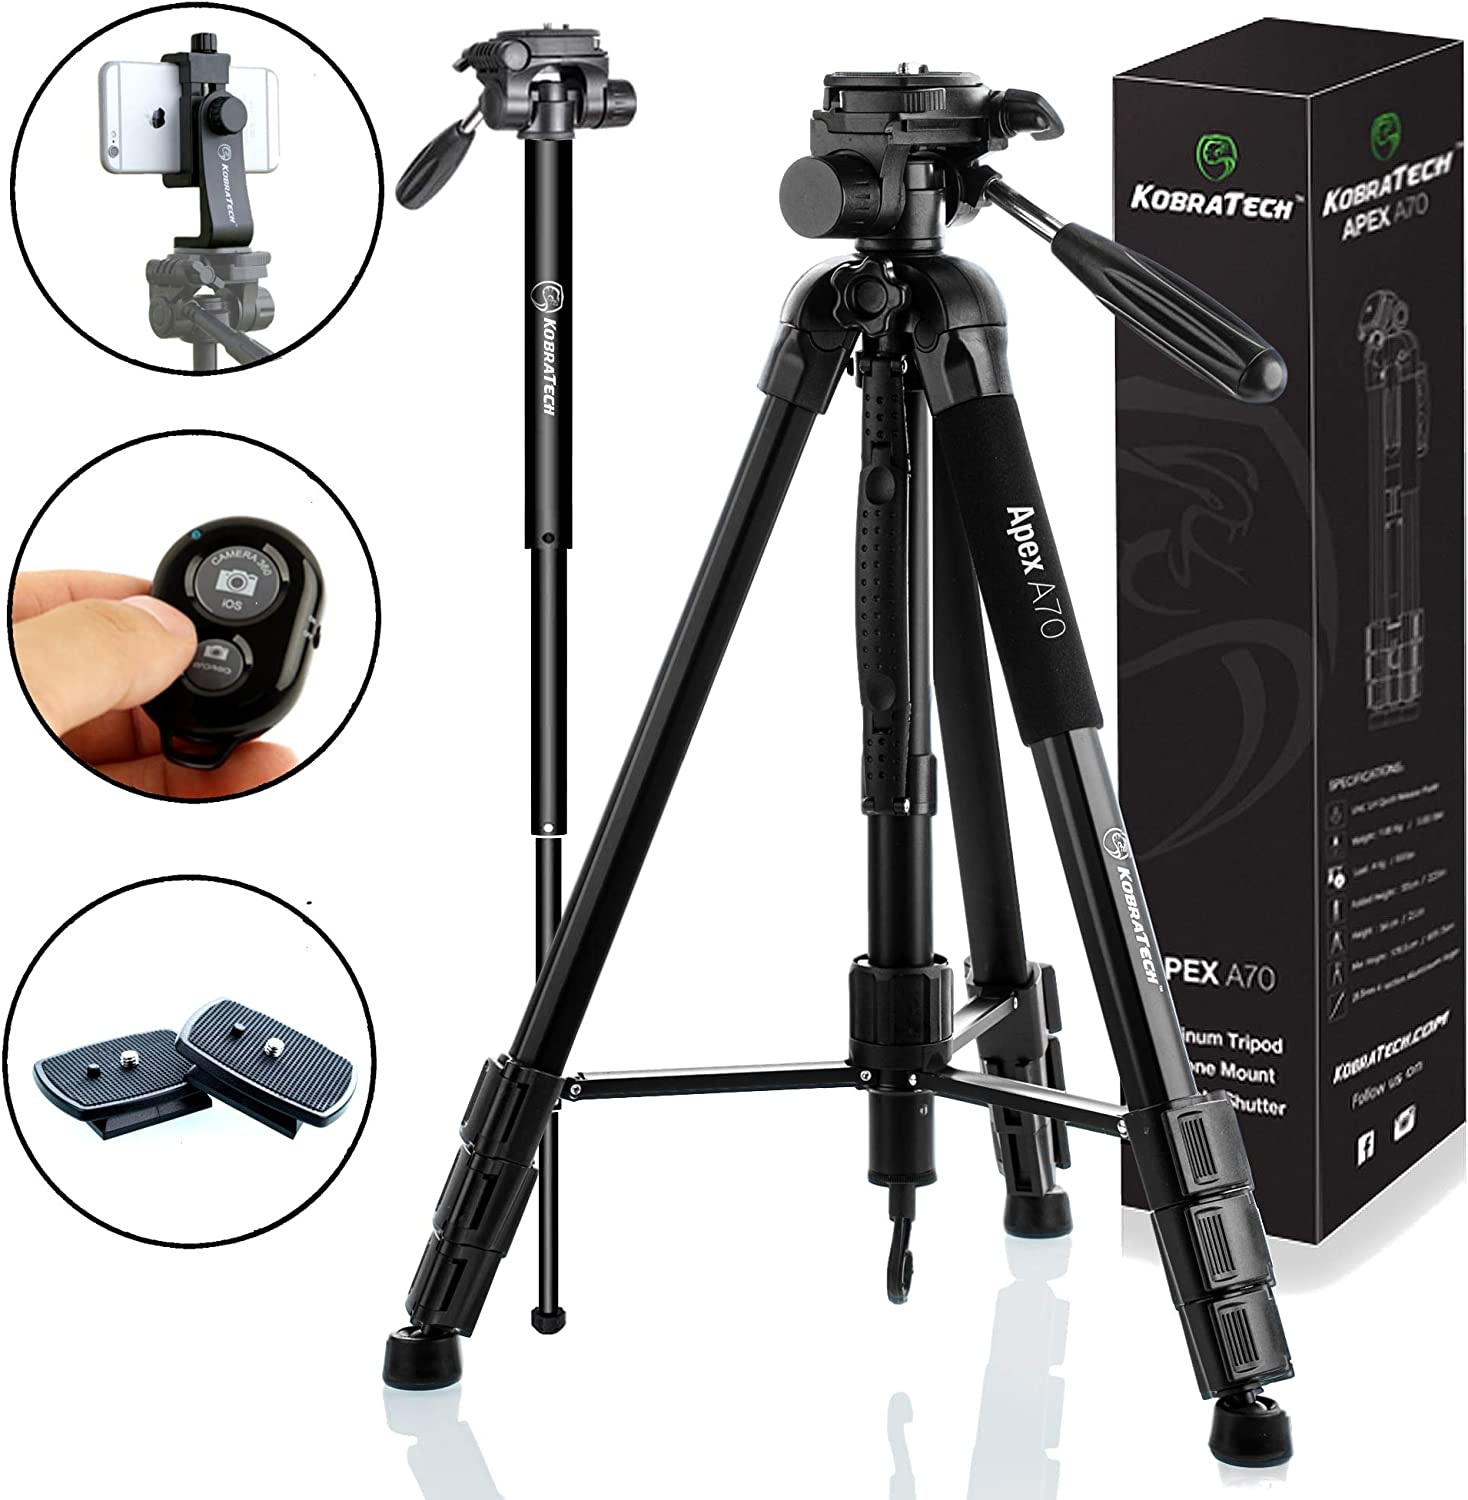 KobraTech 70 Inch Tripod for Camera and Phone - Apex A70 – Camera Tripod Stand with Bluetooth Remote Shutter, Phone Tripod Mount & Monopod